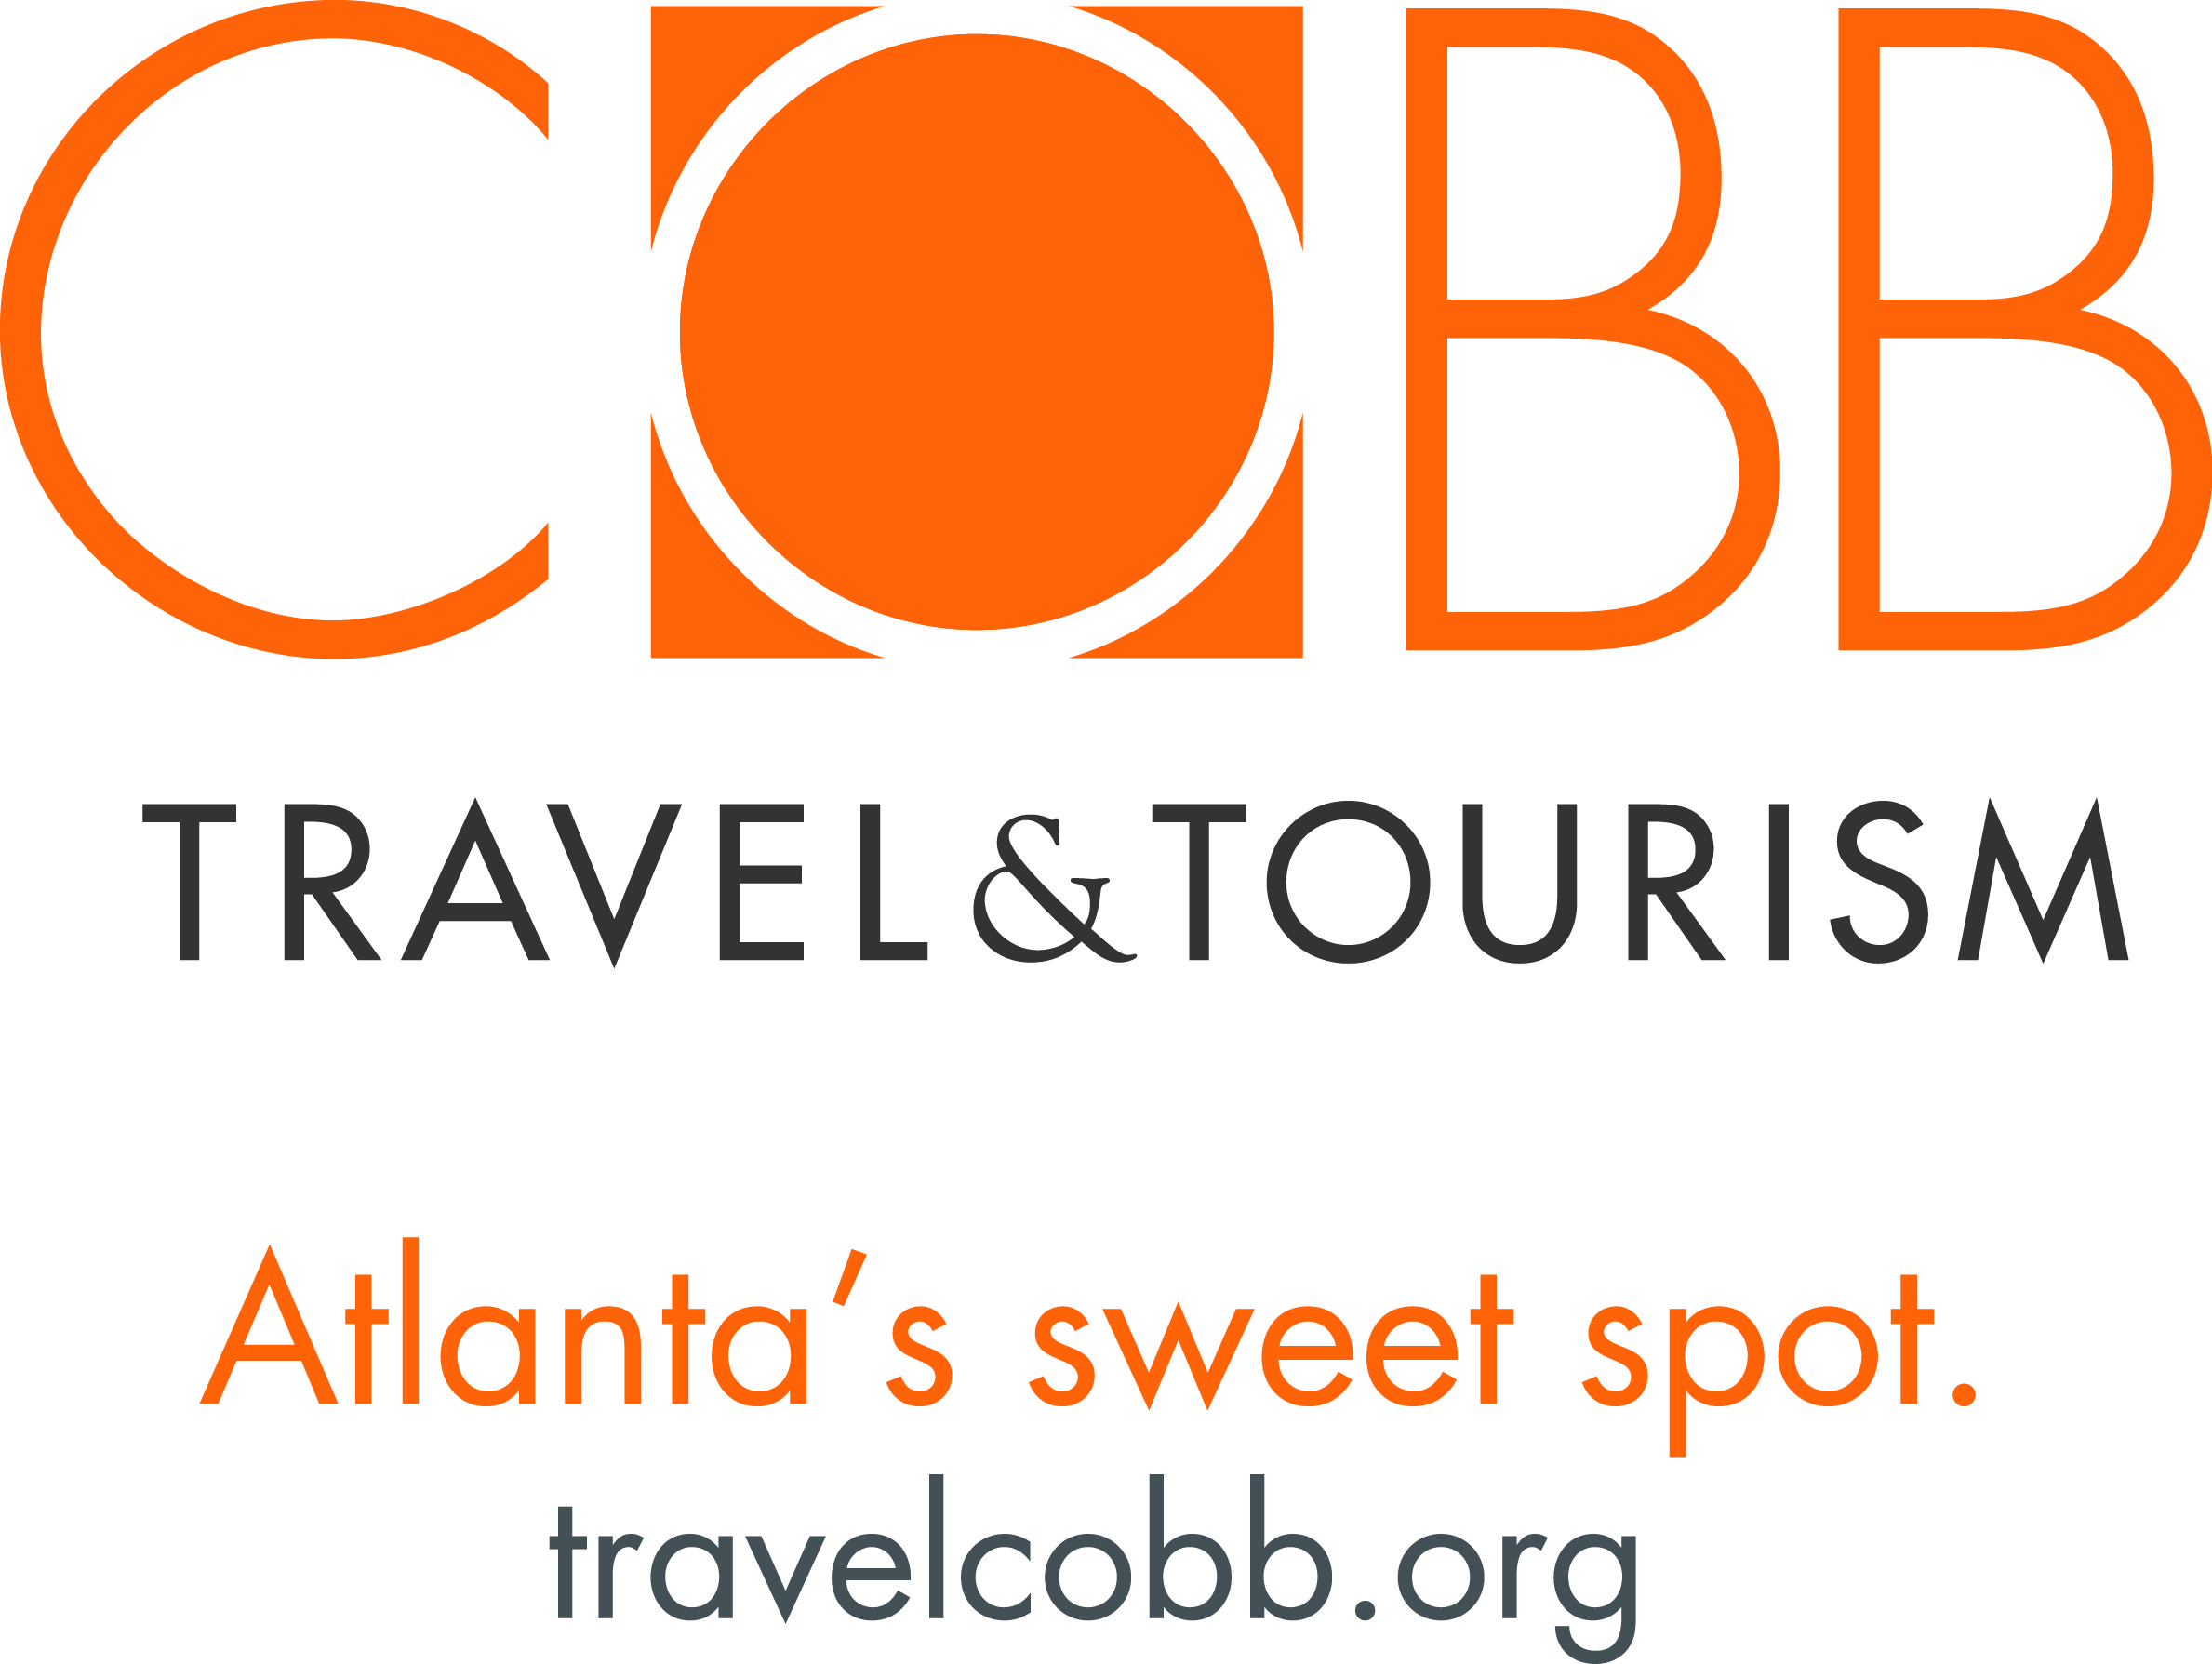 Cobb Travel logo